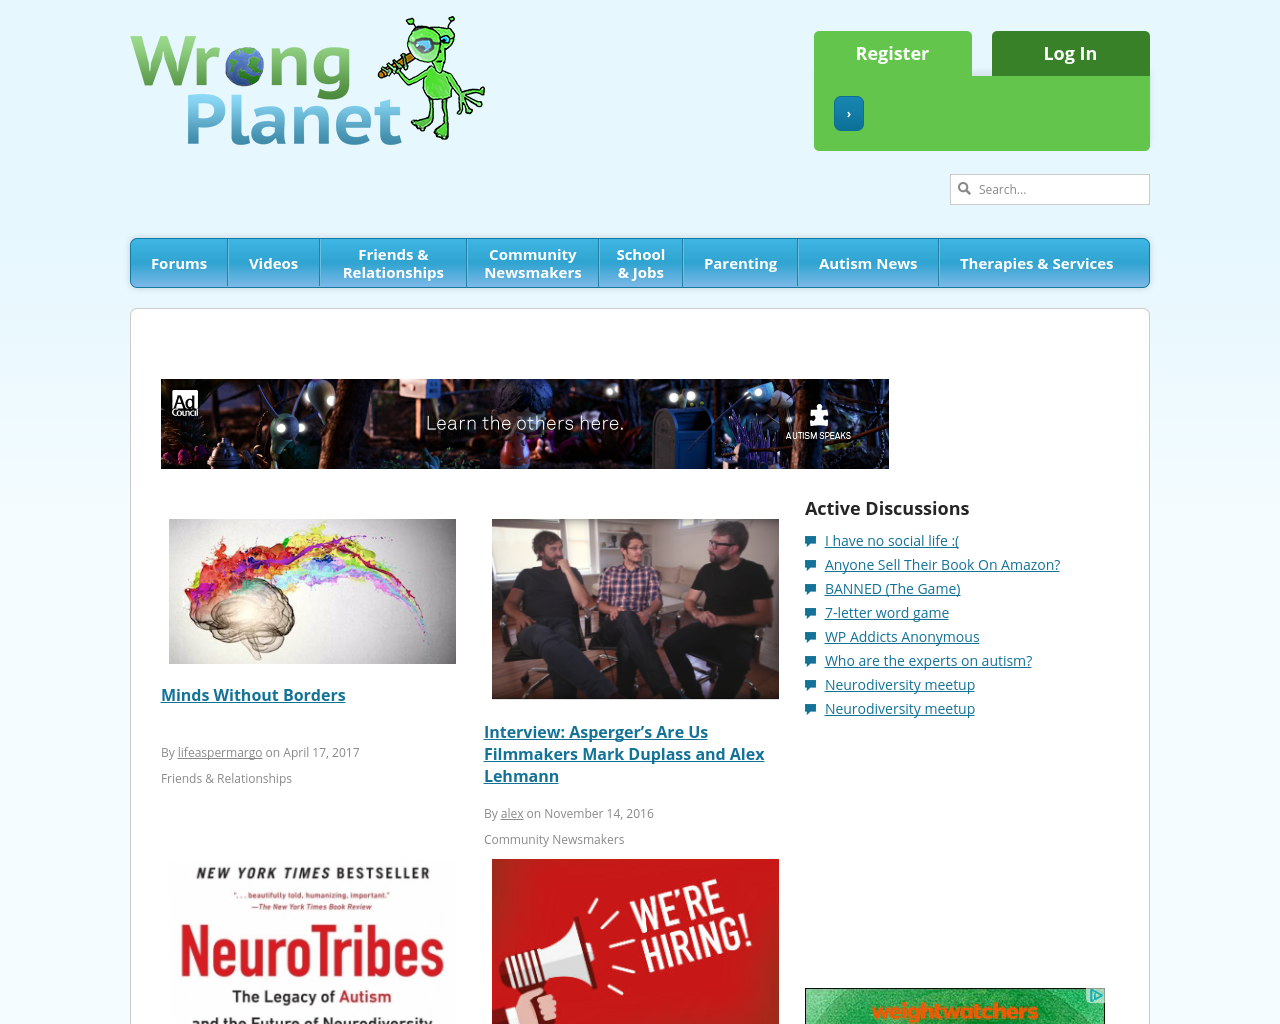 WrongPlanet-Advertising-Reviews-Pricing